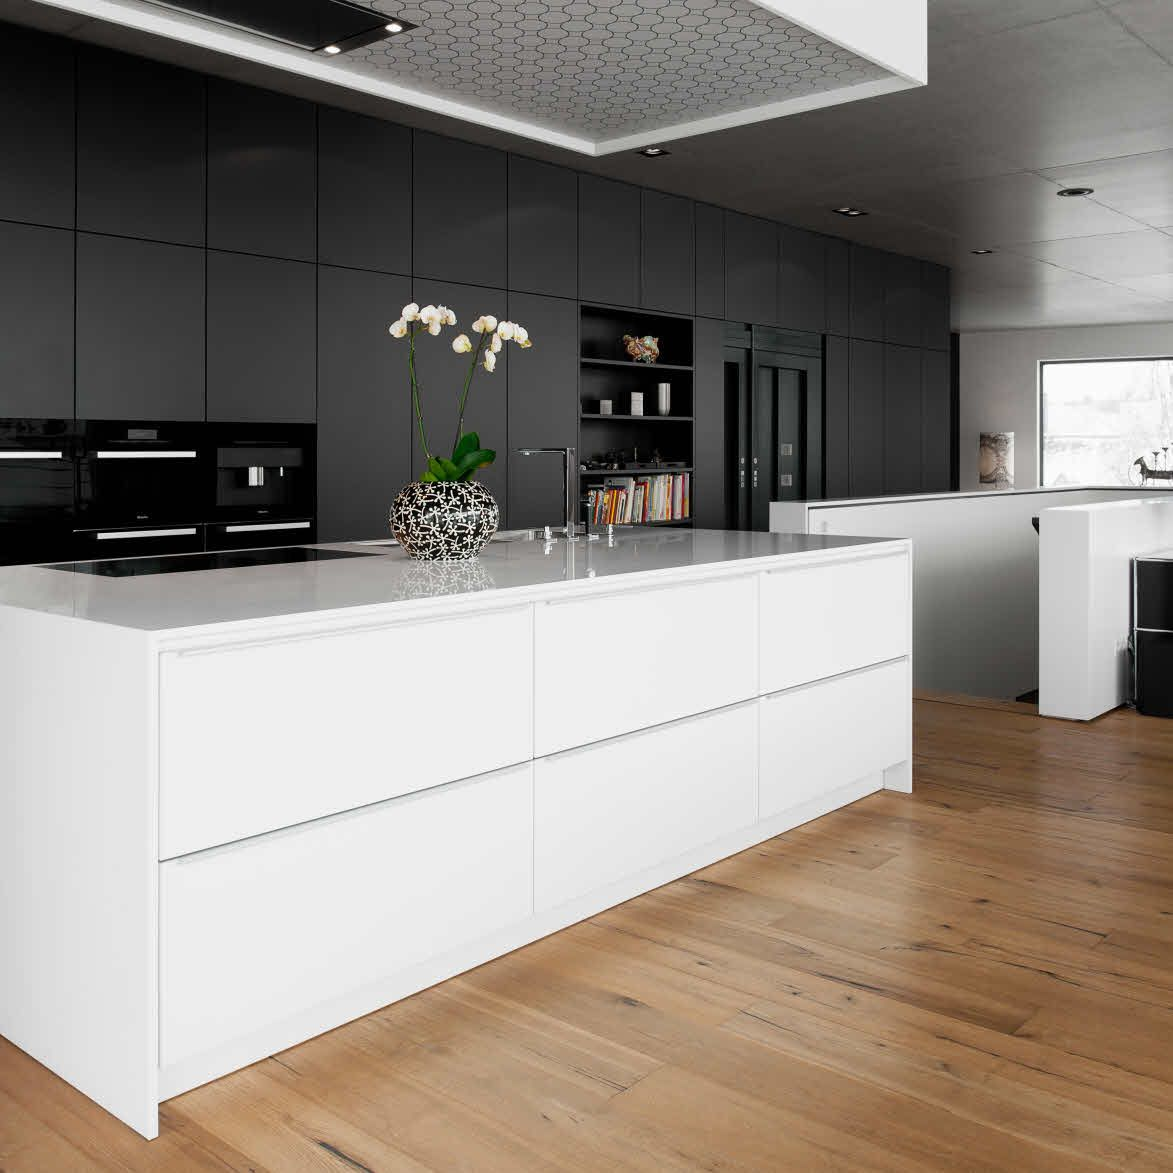 Contemporary Kitchen: The Rear Façade Of The Kitchen, Which Extends Over A Length Of About Six Metres, Hides Access To